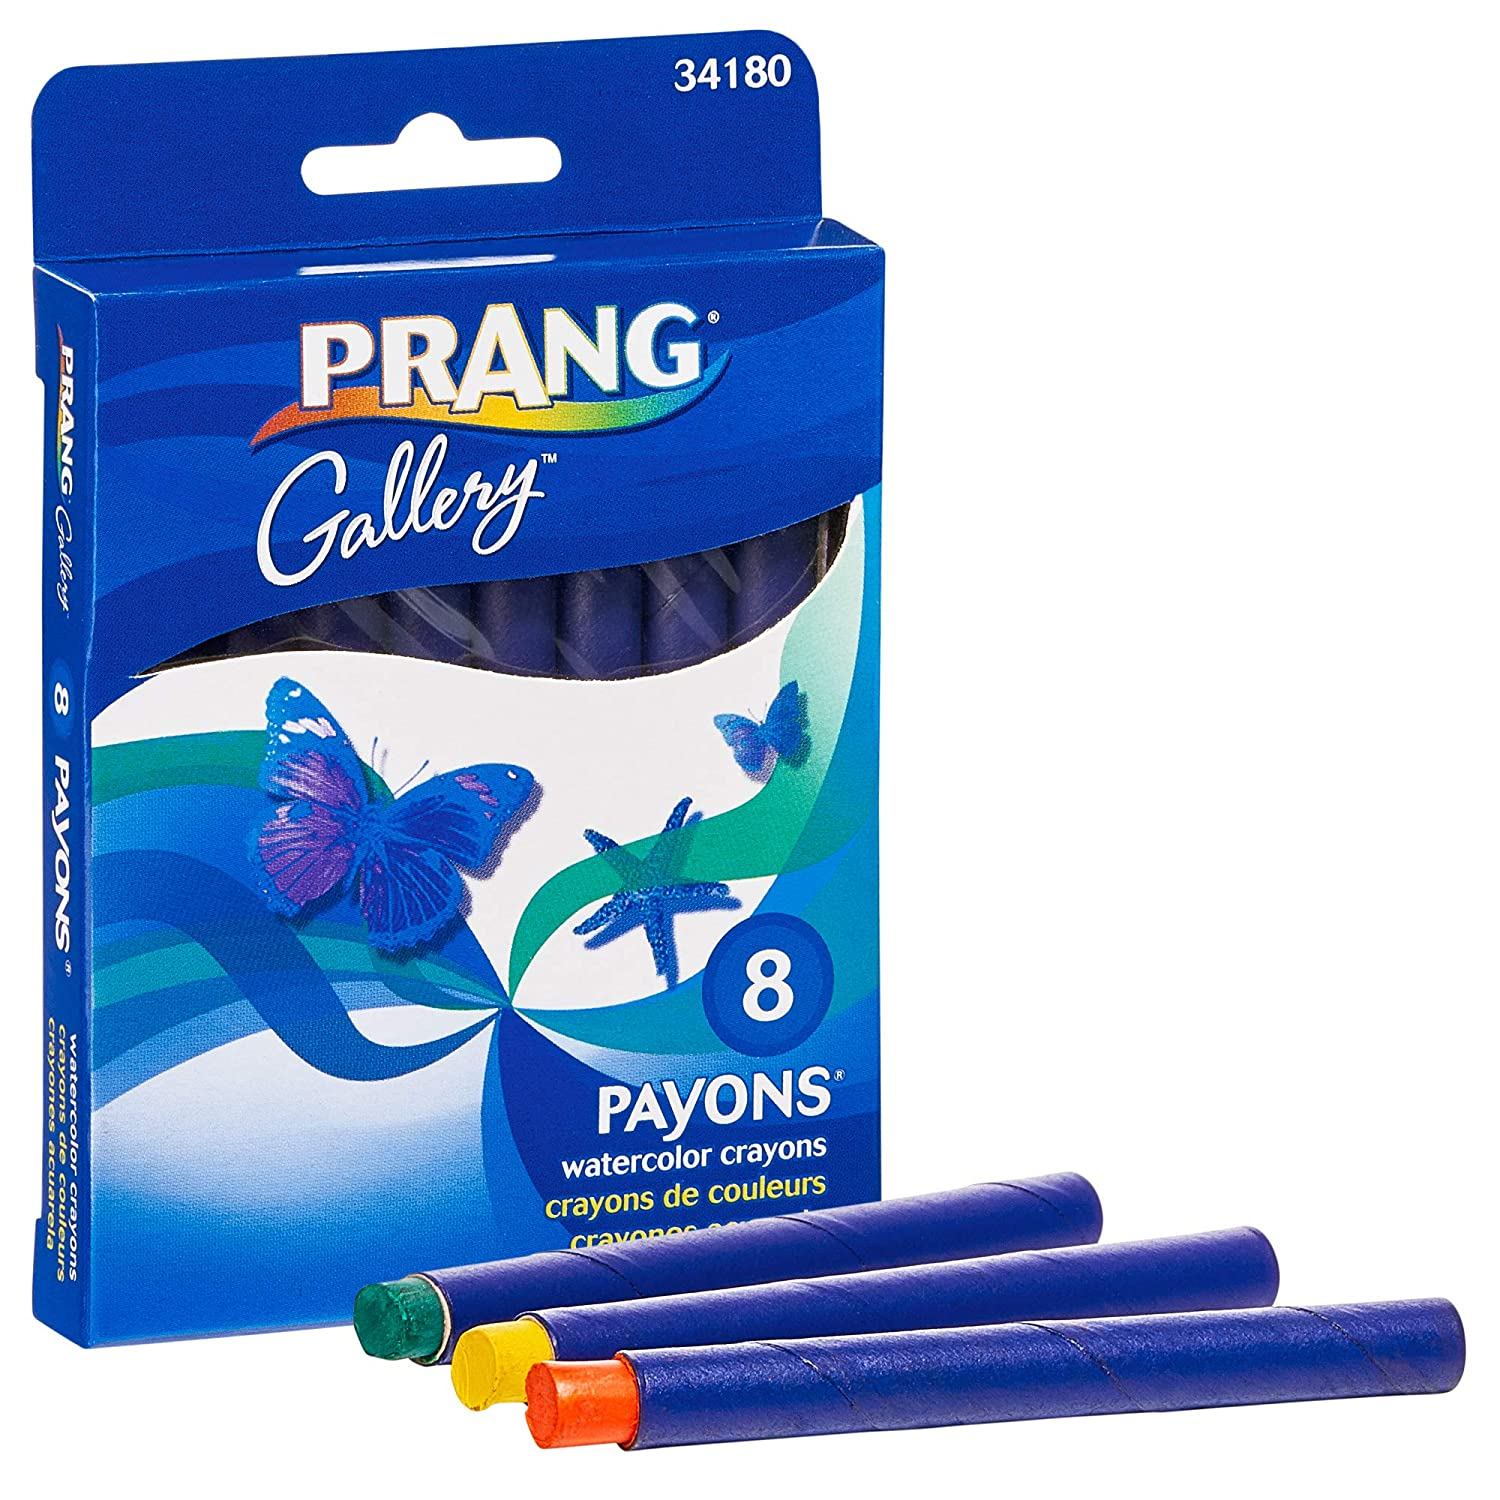 PRANG Payons Watercolor Crayons, Round Sticks, 3.5 x 0.313 Inches, Box of 8 Crayons, 8 Assorted Colors (34180)